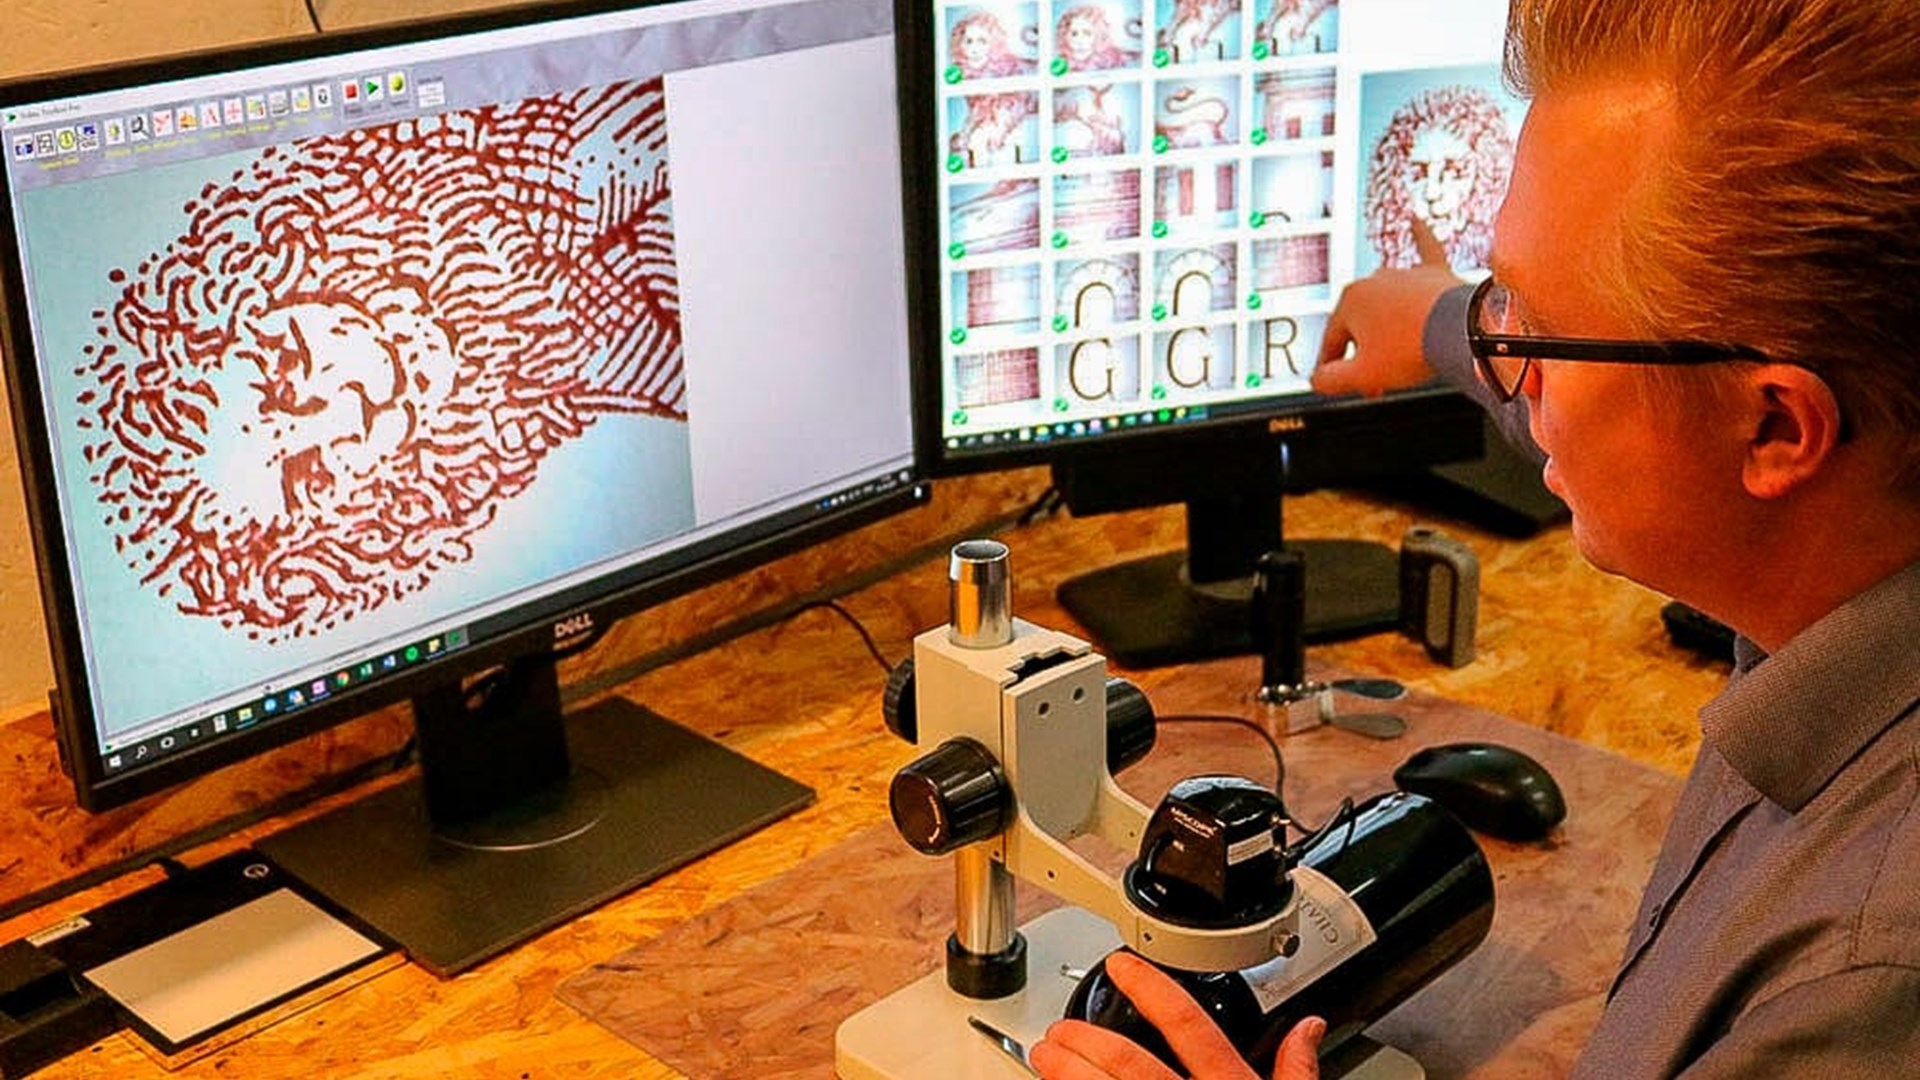 Digital Microscope Wine Detective